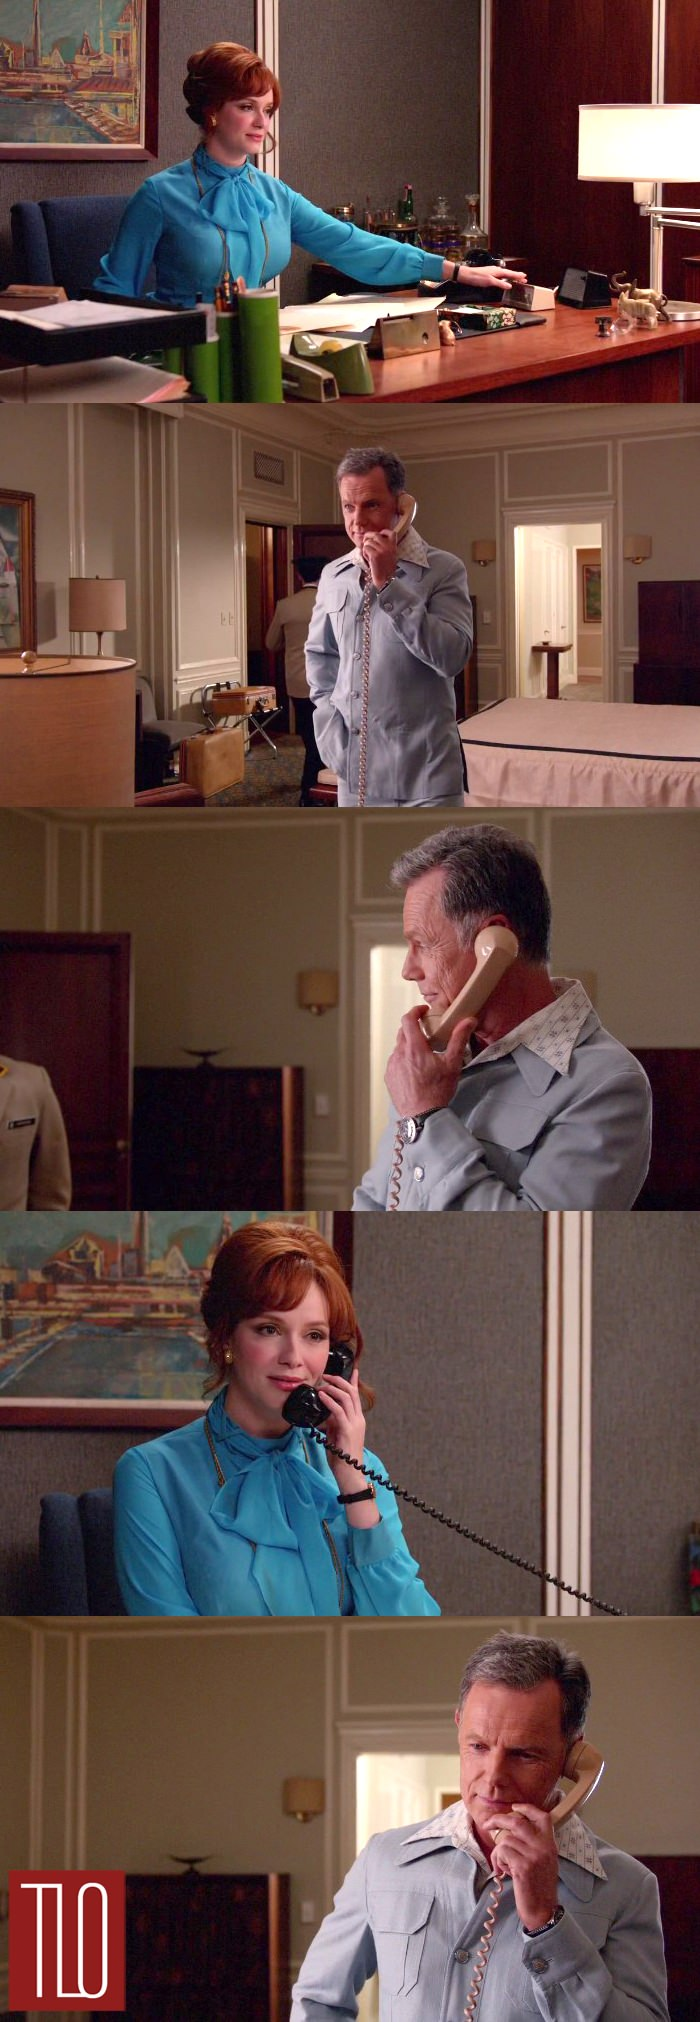 Mad-Men-Television-Mad-Style-Episode-New-Business-Tom-Lorenzo-Site-TLO (10)